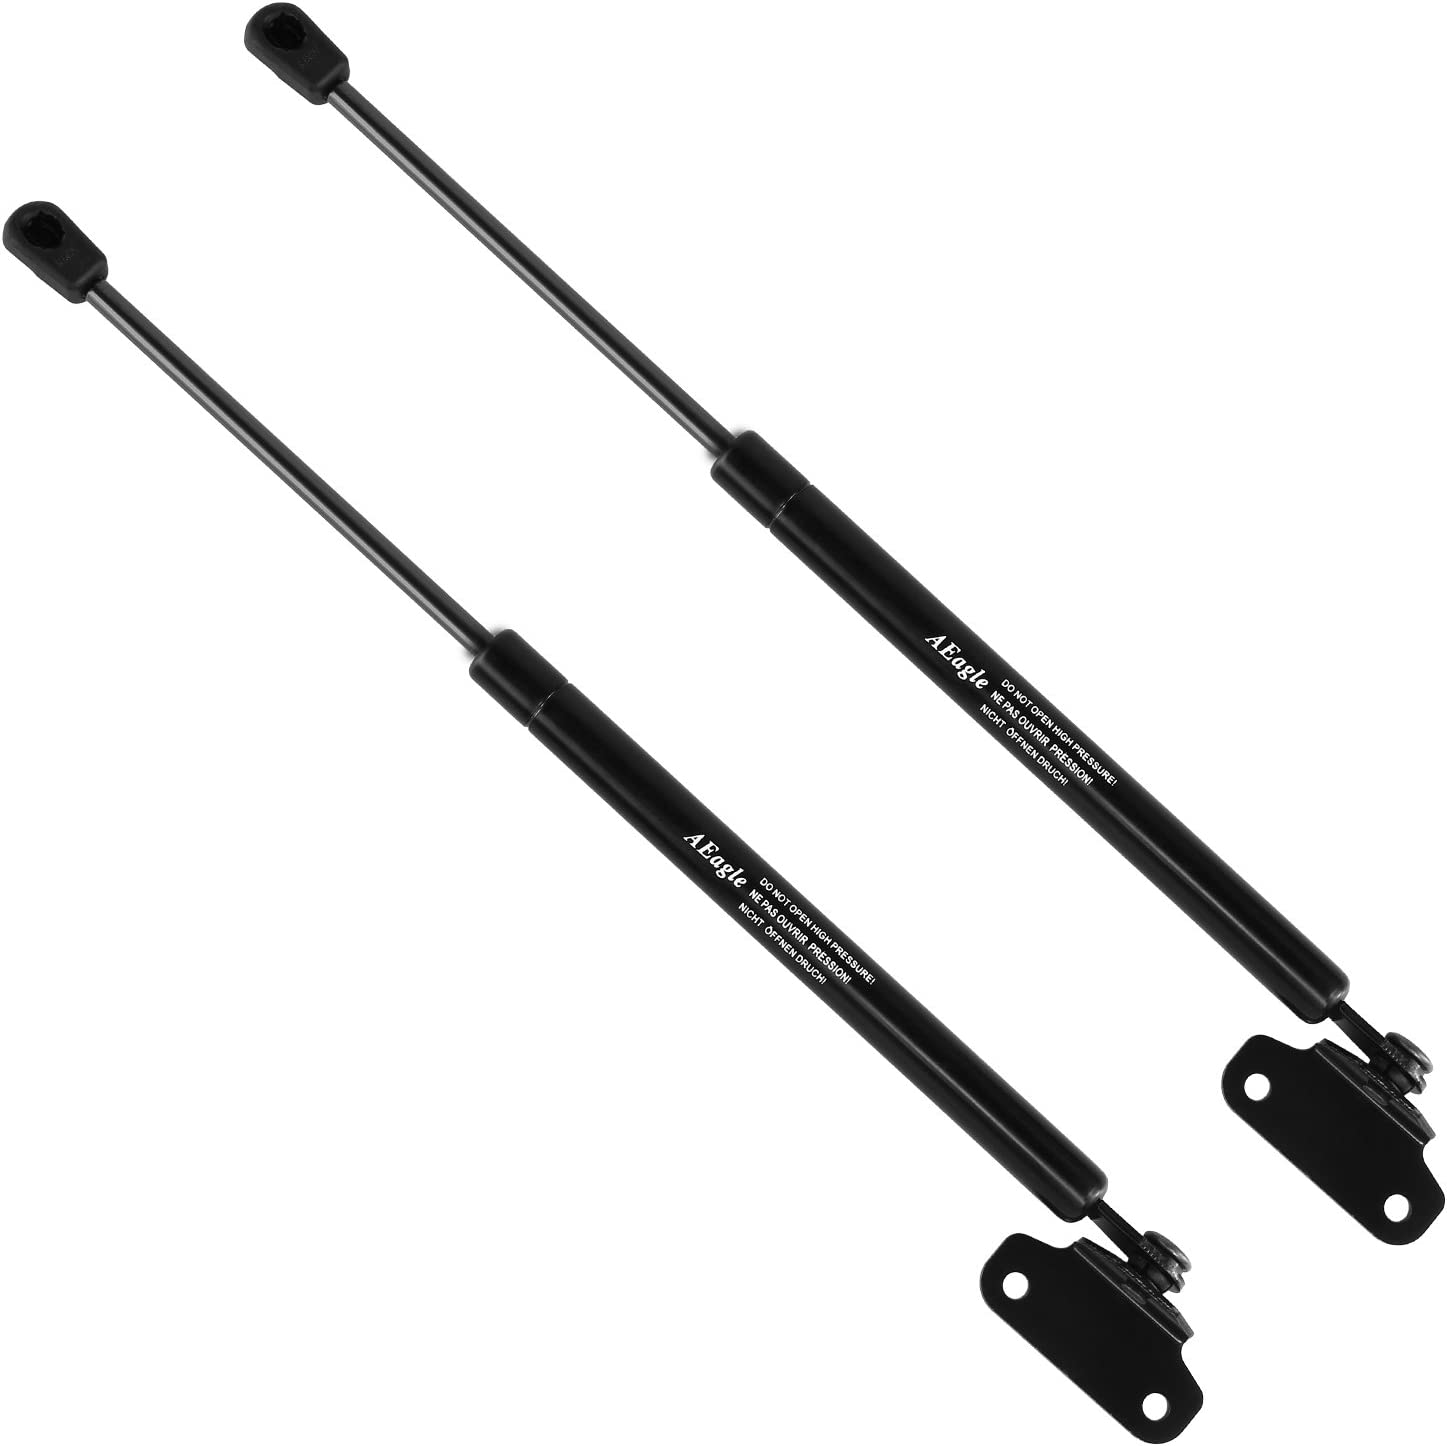 Lift Supports,ECCPP Front Hood Lift Support Struts Gas Springs Shocks for 2003-2007 Honda Accord Compatible with 4157 Set of 2